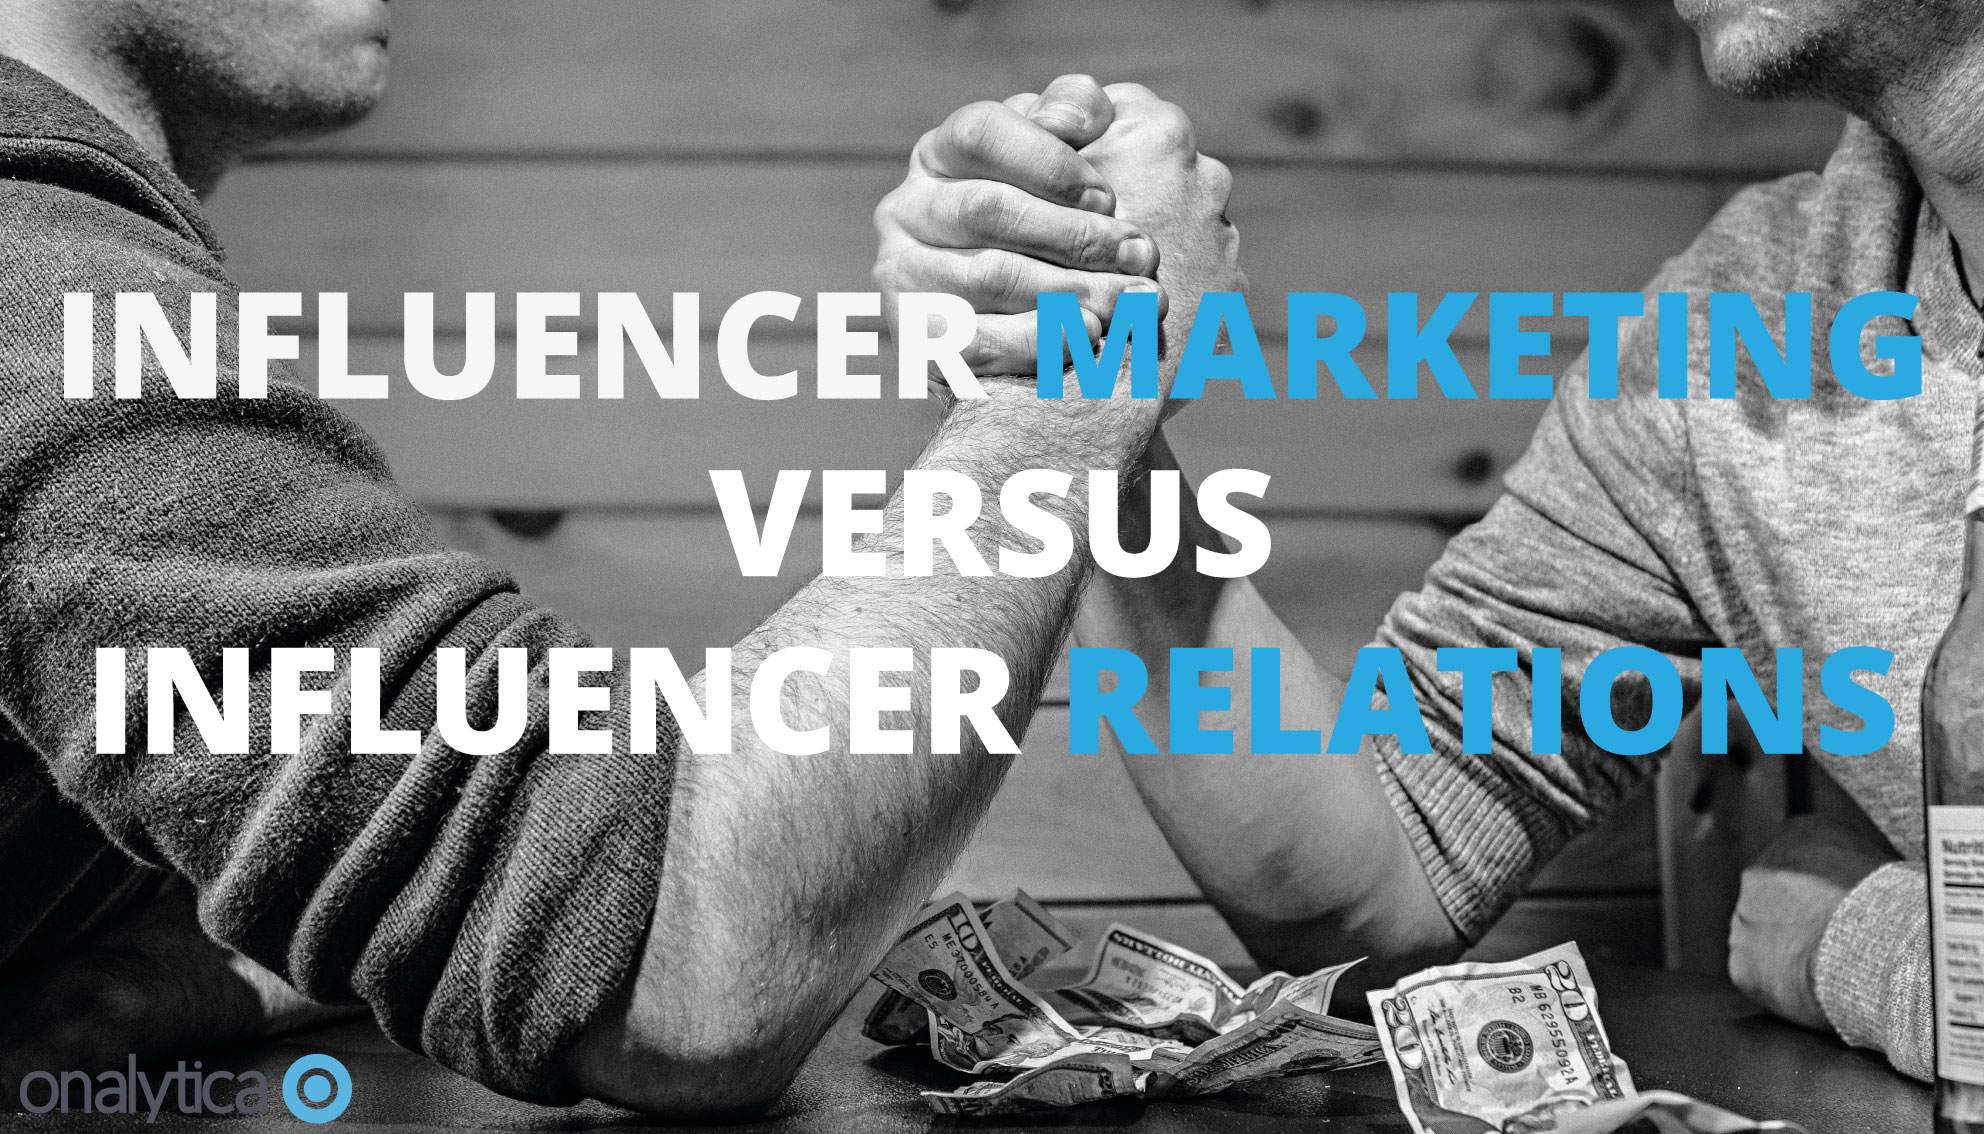 product and services marketing are fundamentally different versus product and services marketing are Read this essay on product and service marketing product and service marketing are fundamentally different a service, unlike products different marketing tactics work better for services versus products.